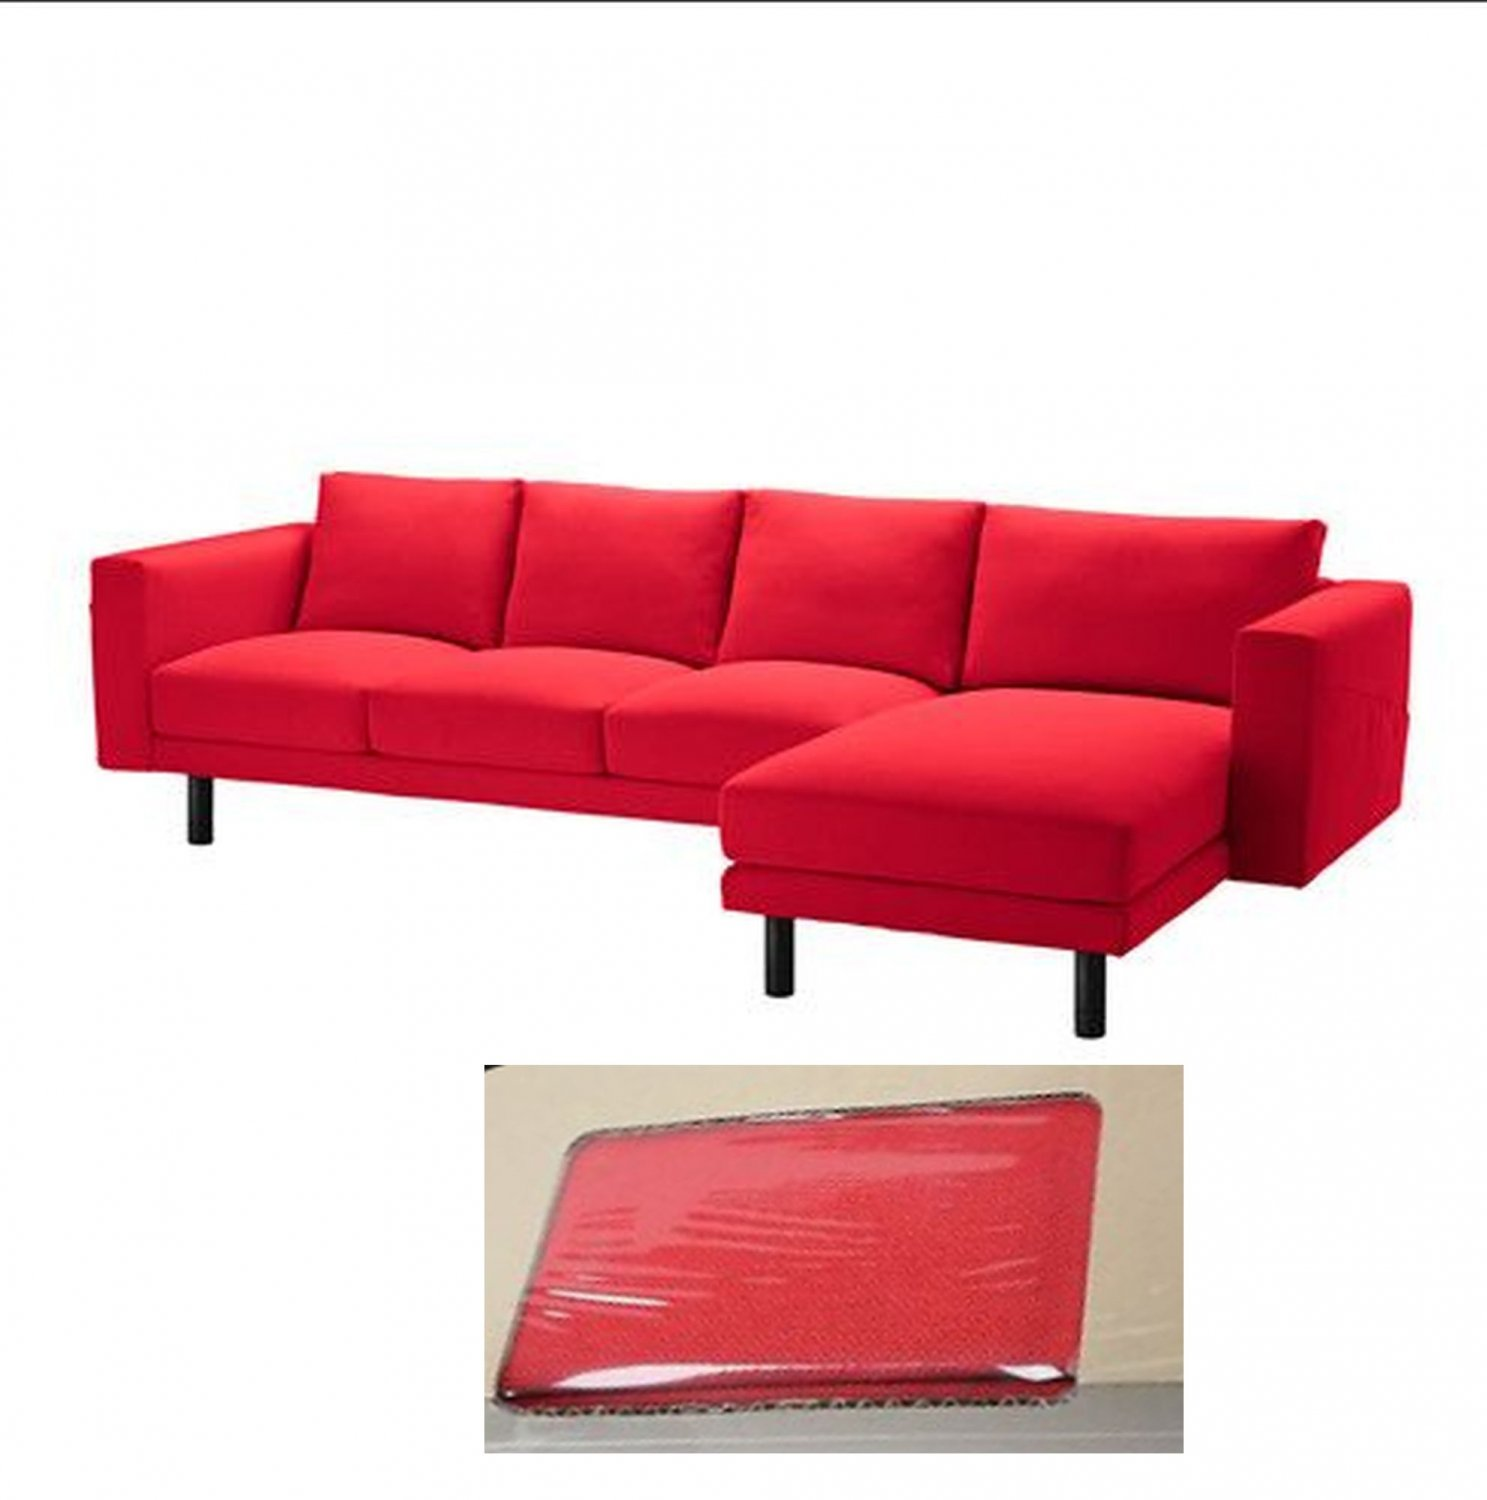 ikea 4 seater sofa cover cindy crawford denim sale norsborg 3 seat w chaise slipcover finnsta